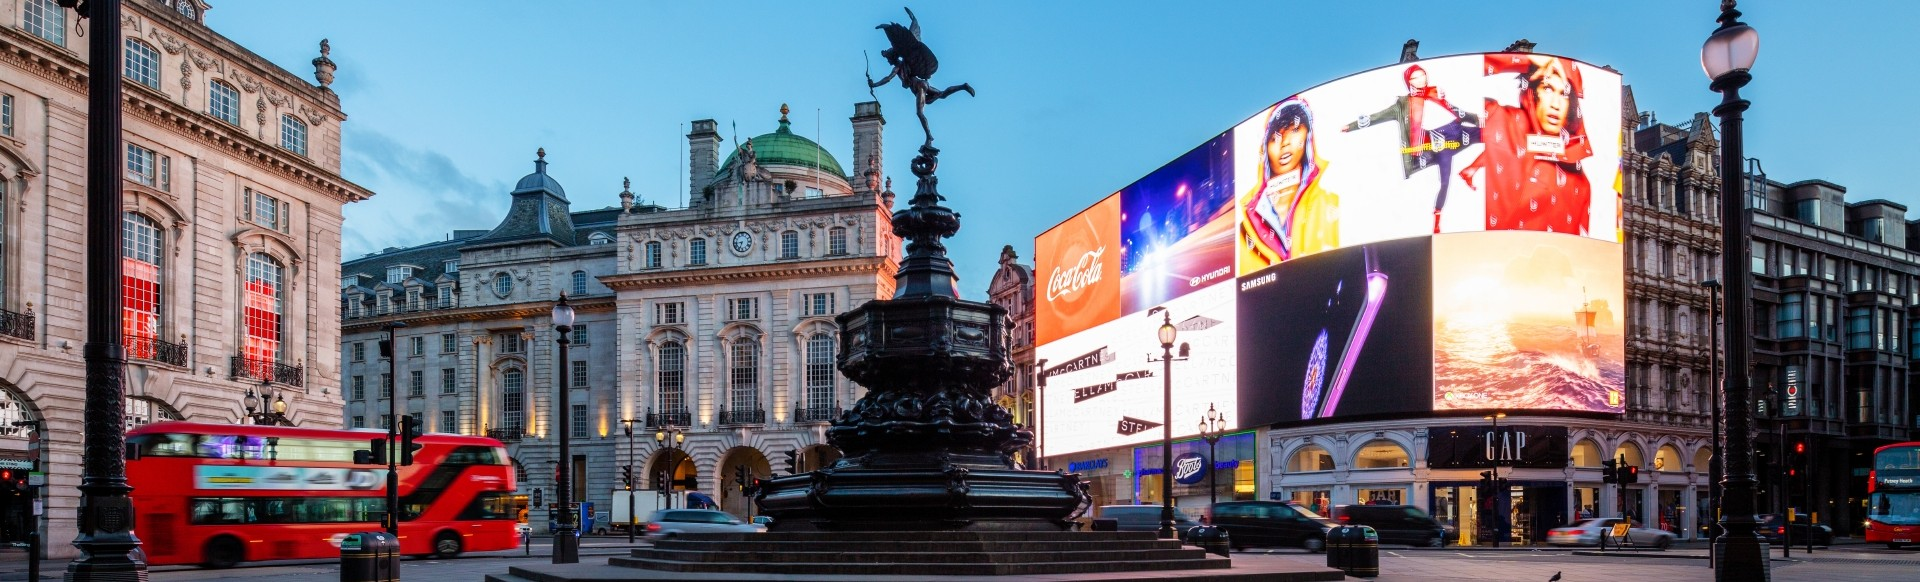 Panoramic view of a large bright advertising board with advertising, a double deck red bus and a black varnished fountain in the centre.